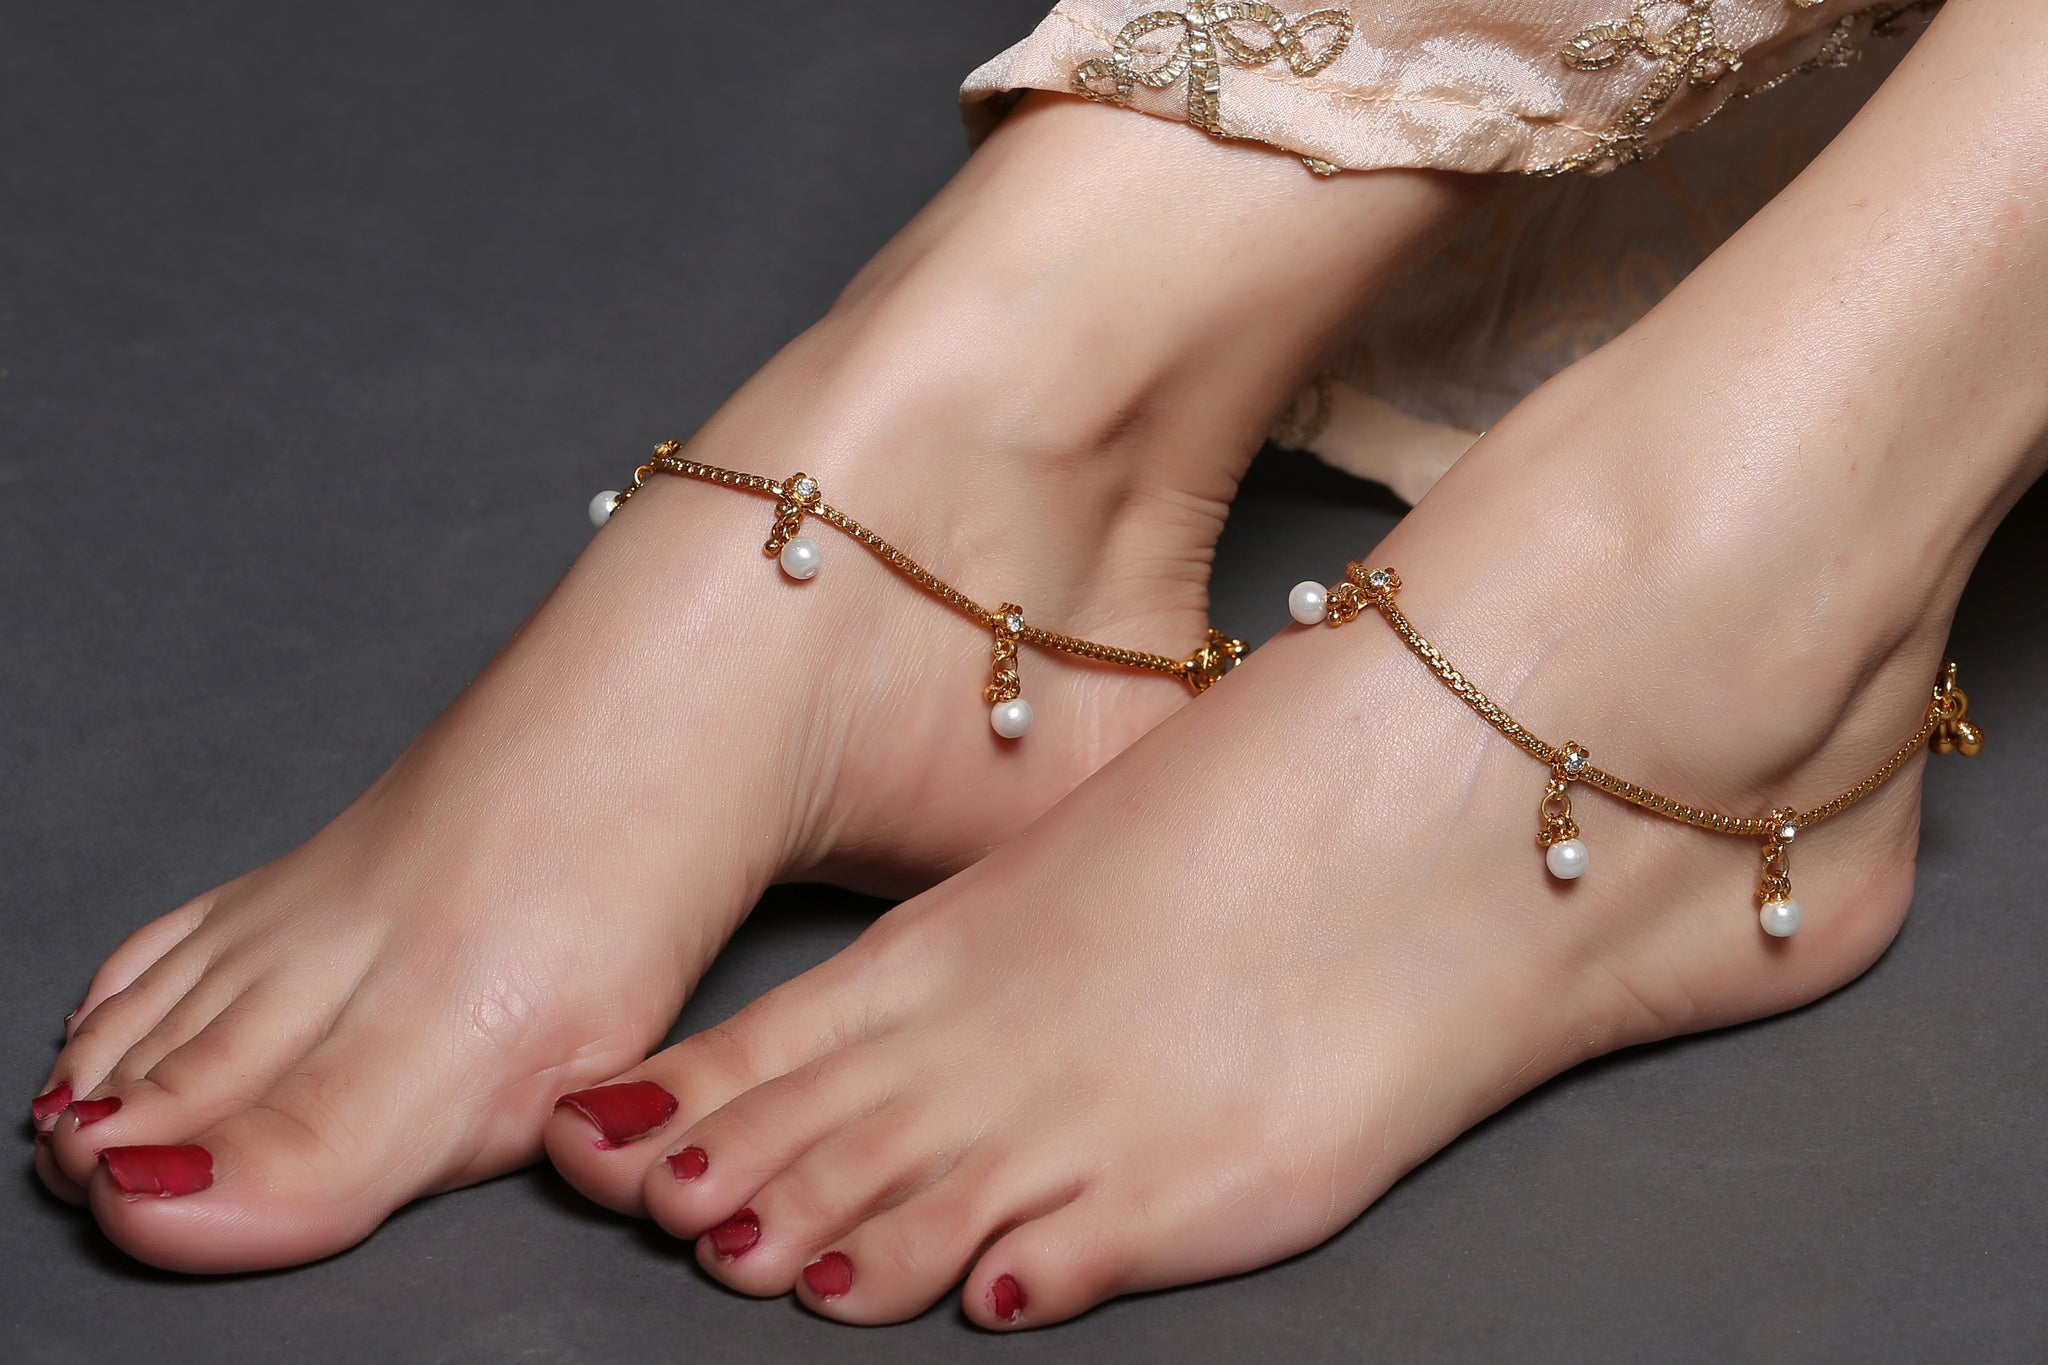 bracelet chain sterling all necklace plated link anklet gold vermeil with heart silver sizes